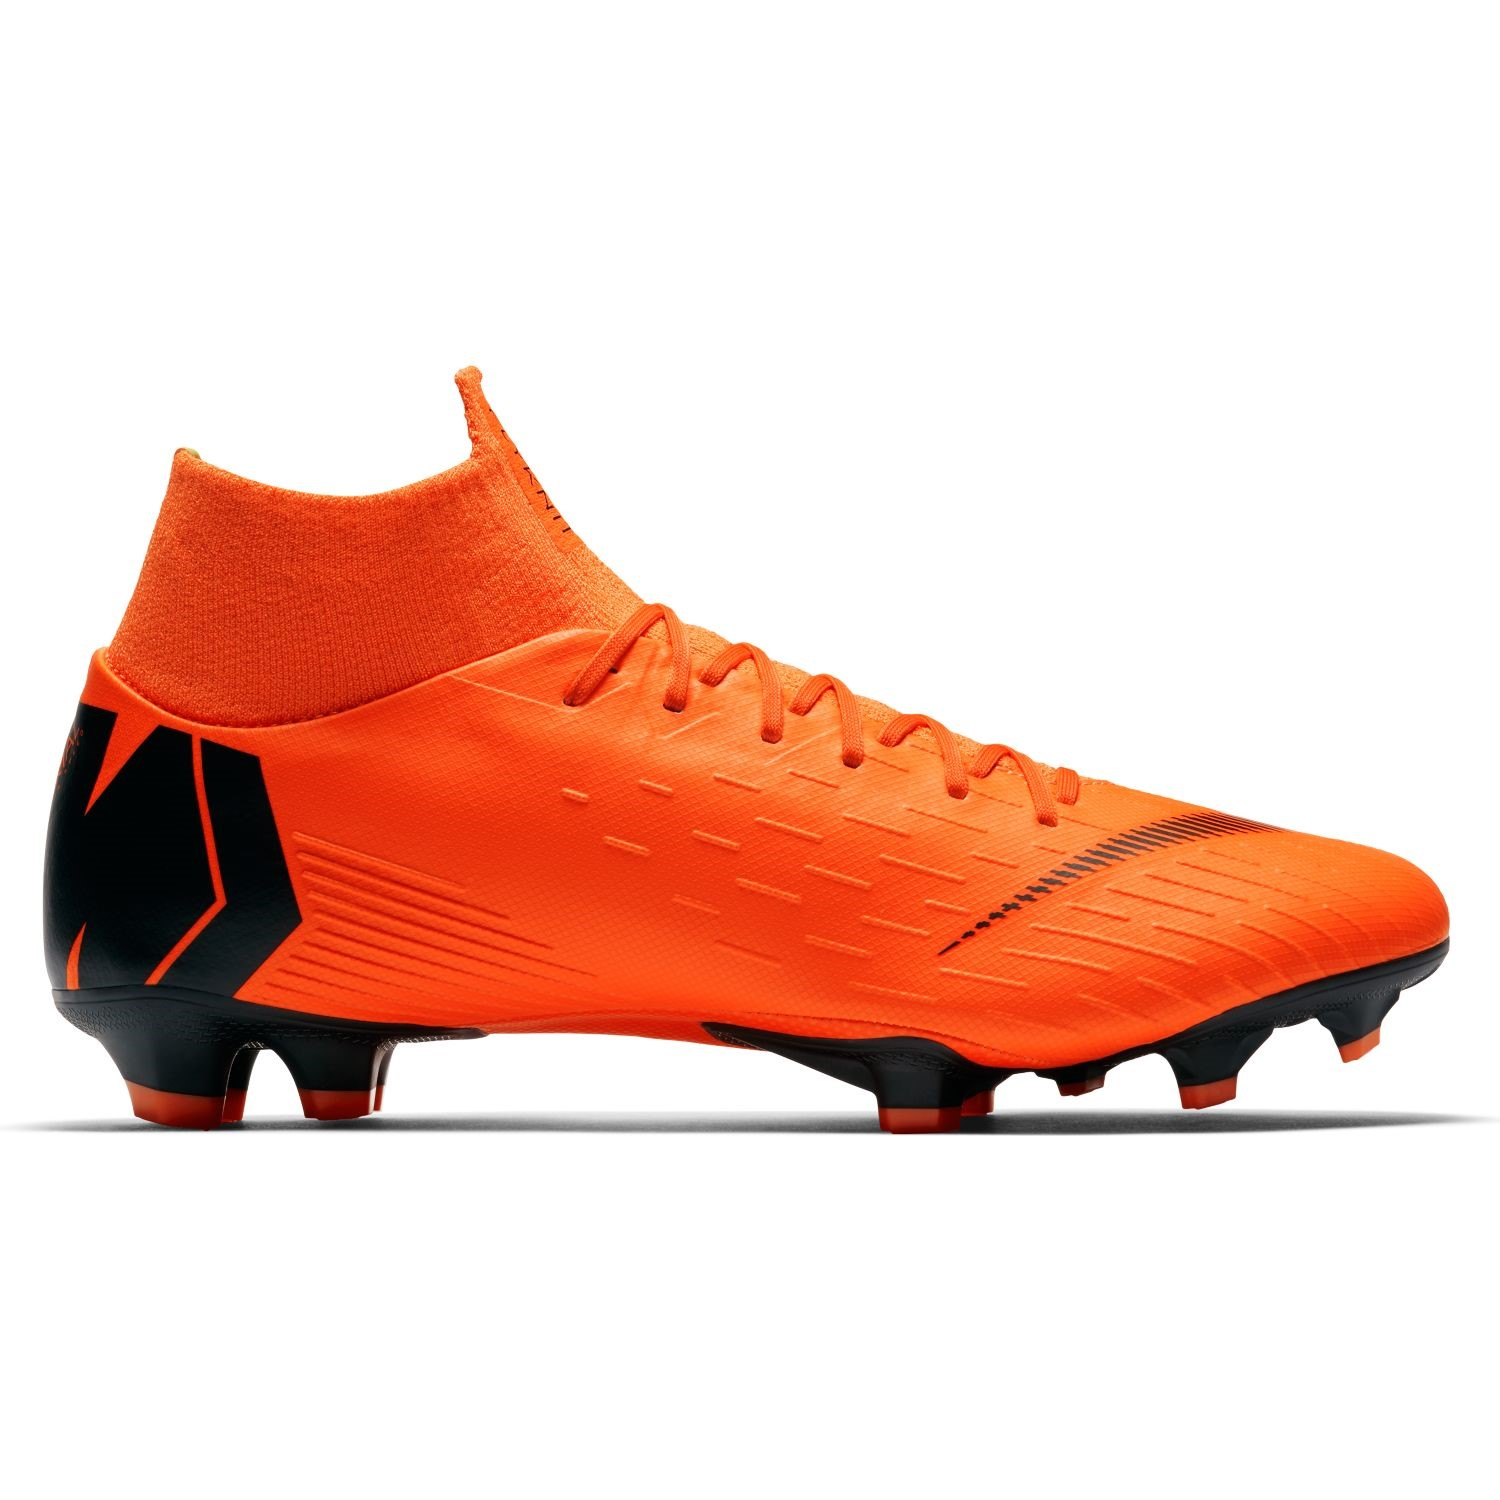 a3af6da67d65 Nike Mercurial Superfly VI Pro FG - Mens Football Boots - Total Orange Black